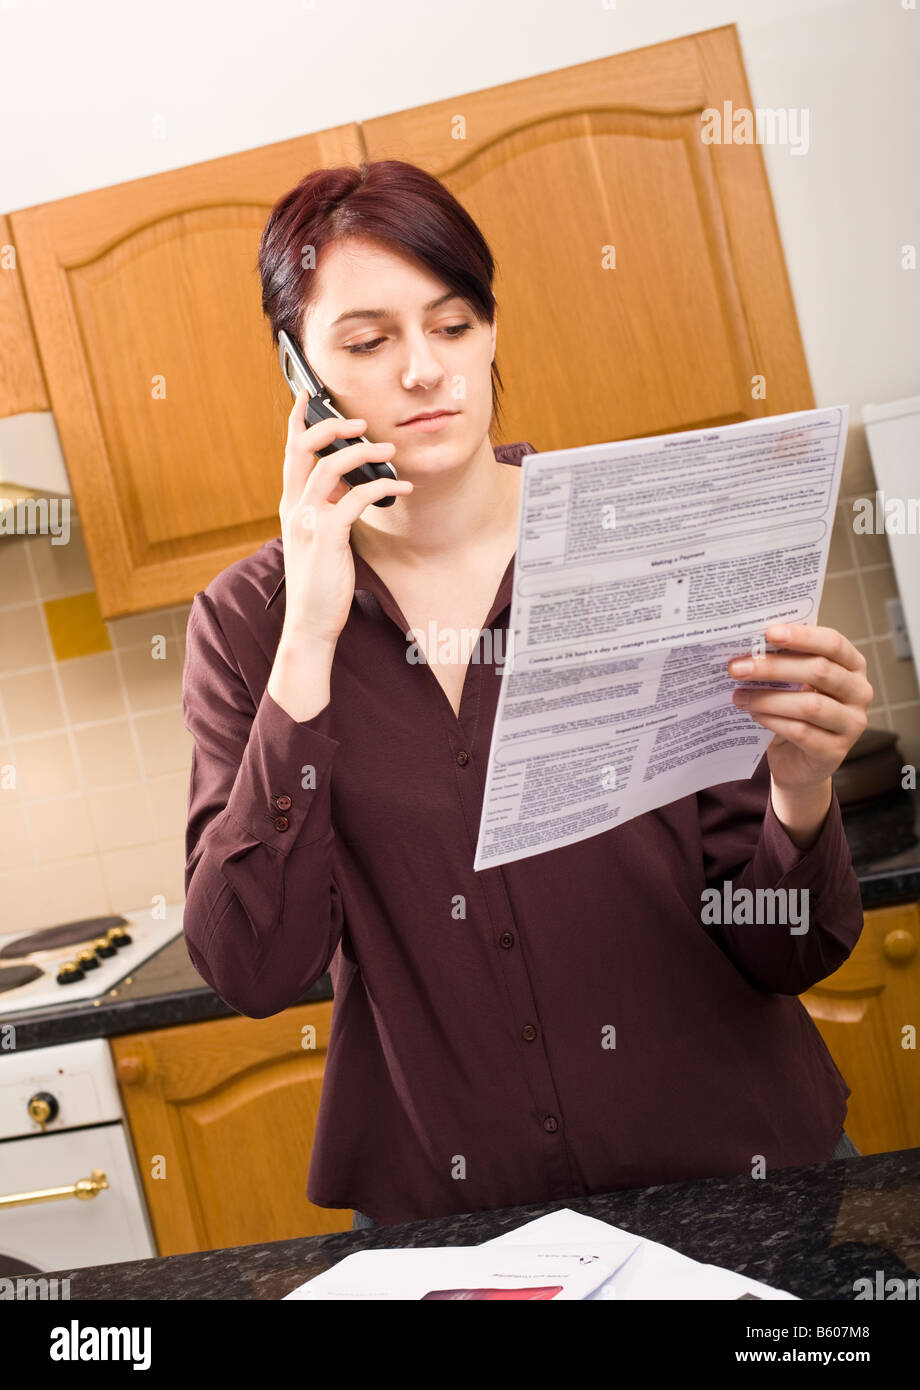 Young woman at home paying or querying a bill using her mobile phone listening and concentrating MR PR - Stock Image